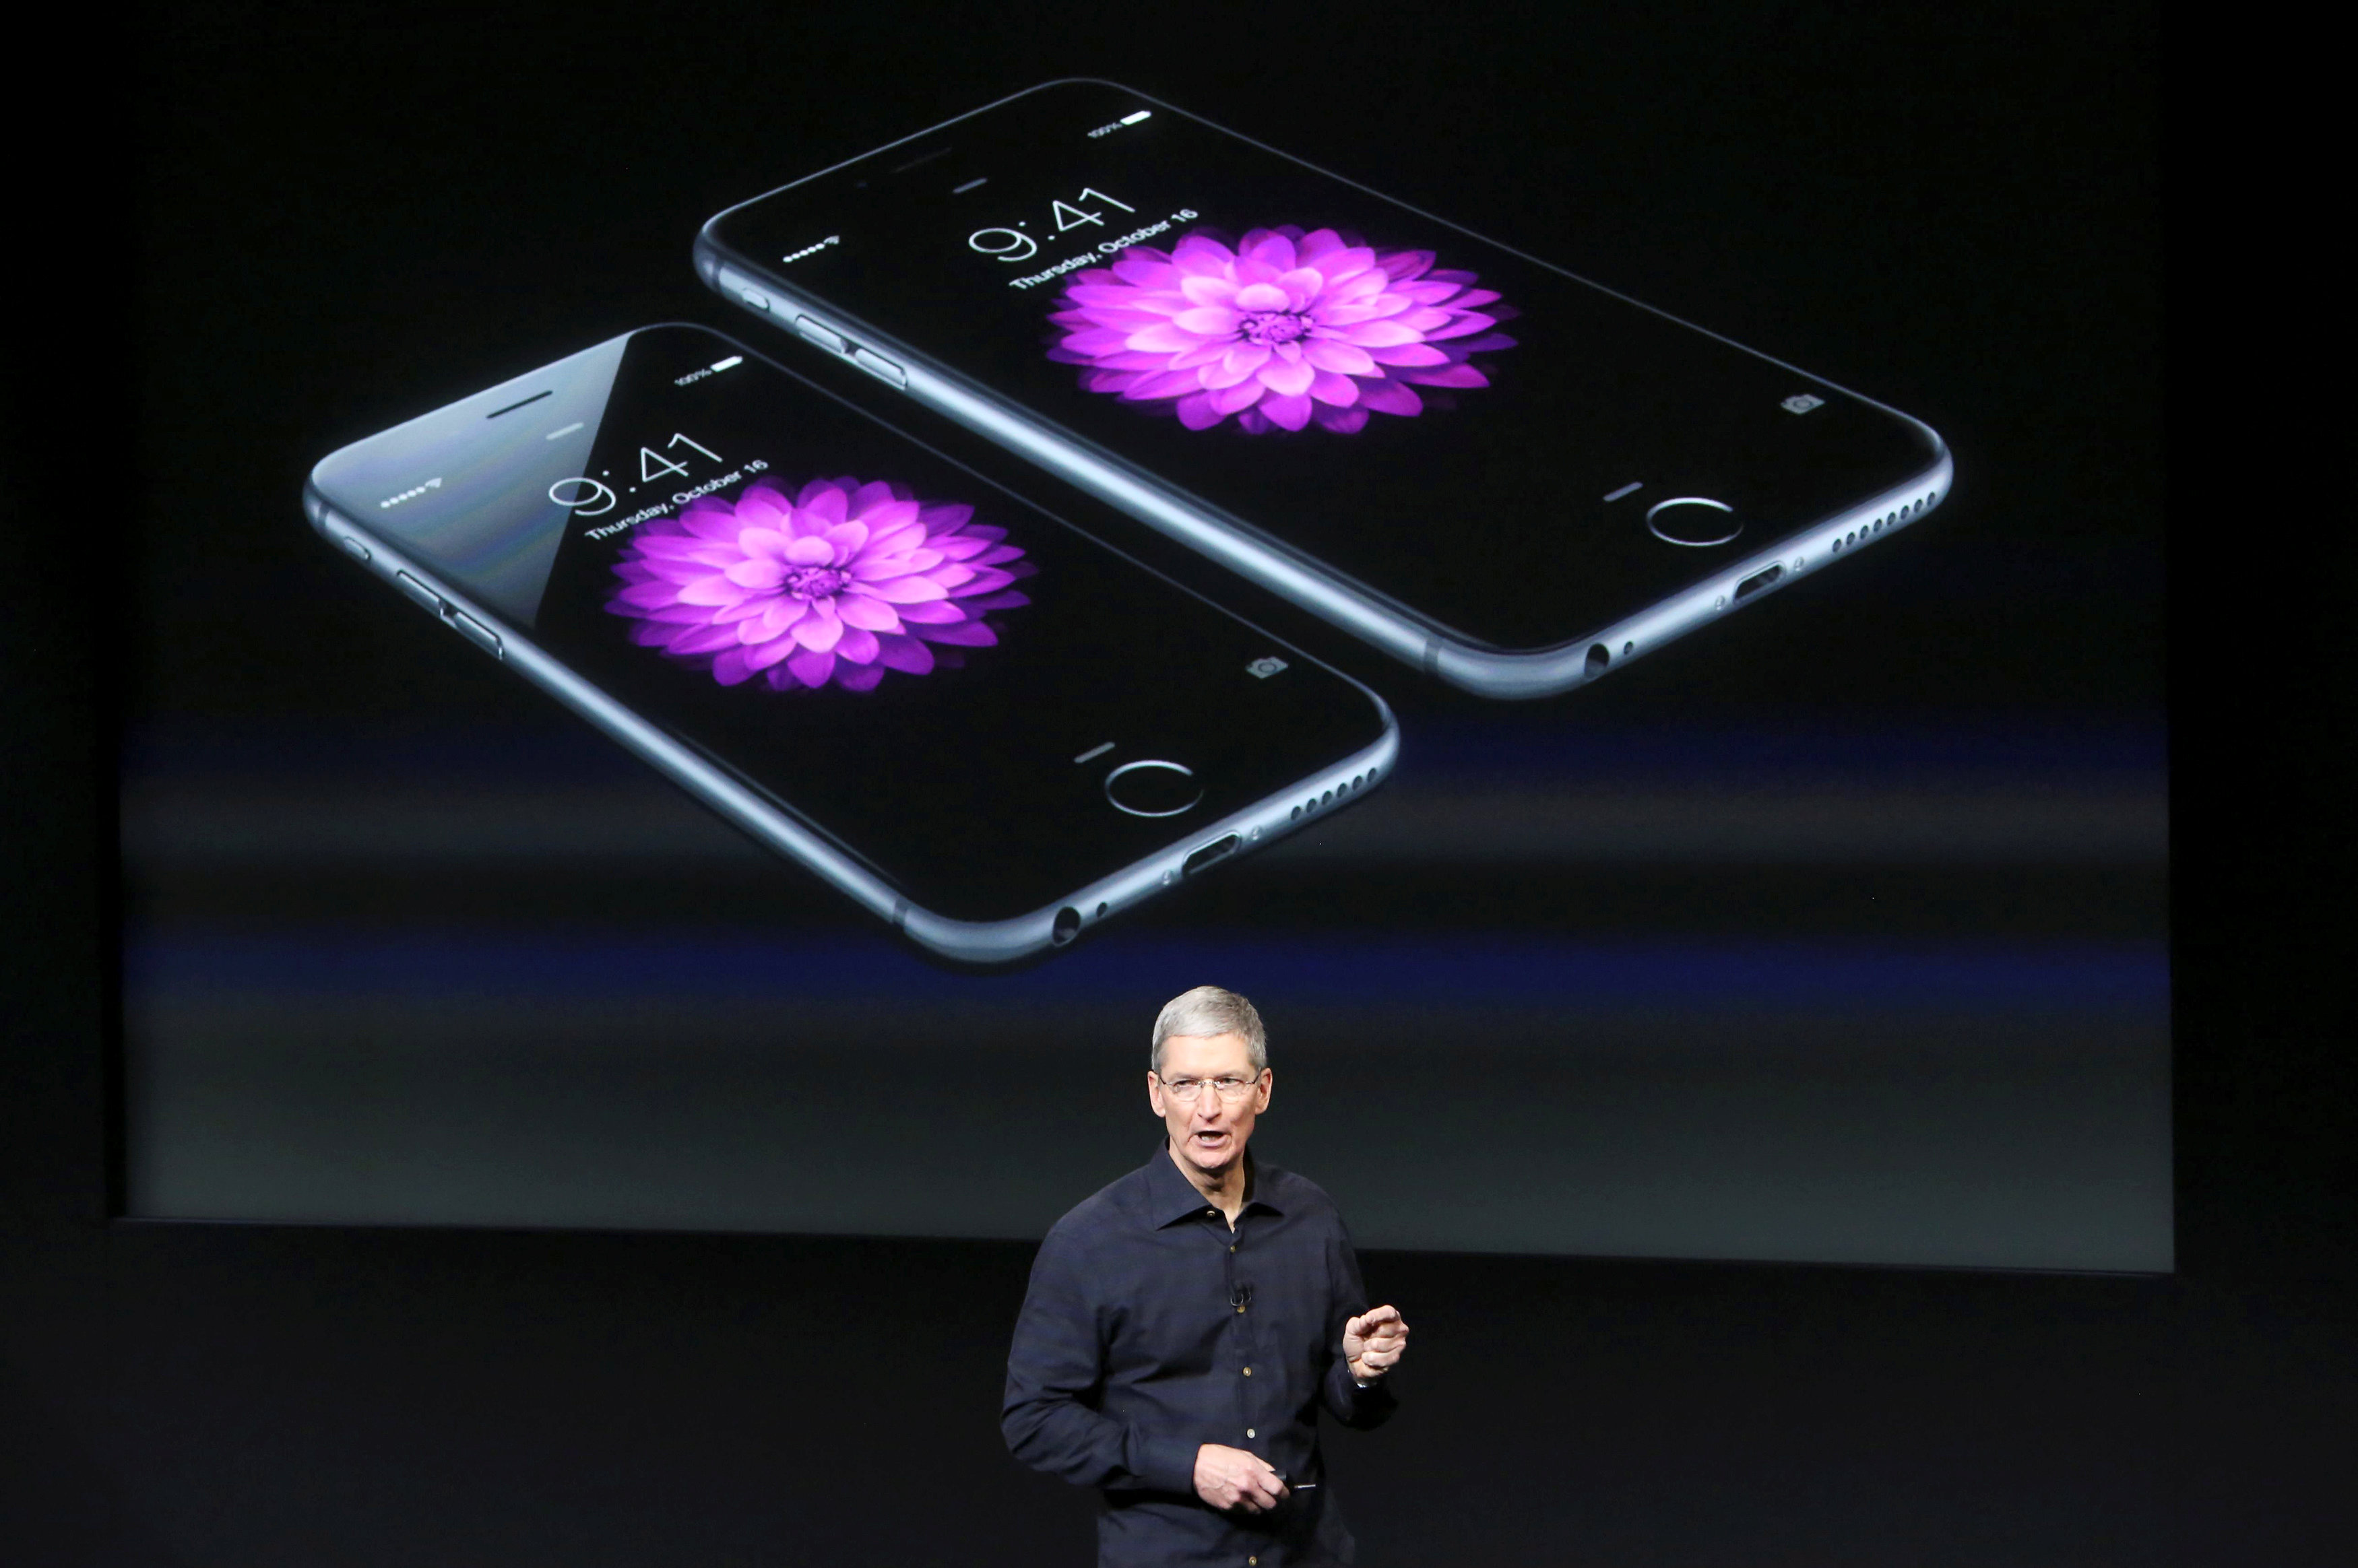 Apple CEO Tim Cook stands in front of a screen displaying the IPhone 6 during a presentation at Apple headquarters in Cupertino, California October 16, 2014.